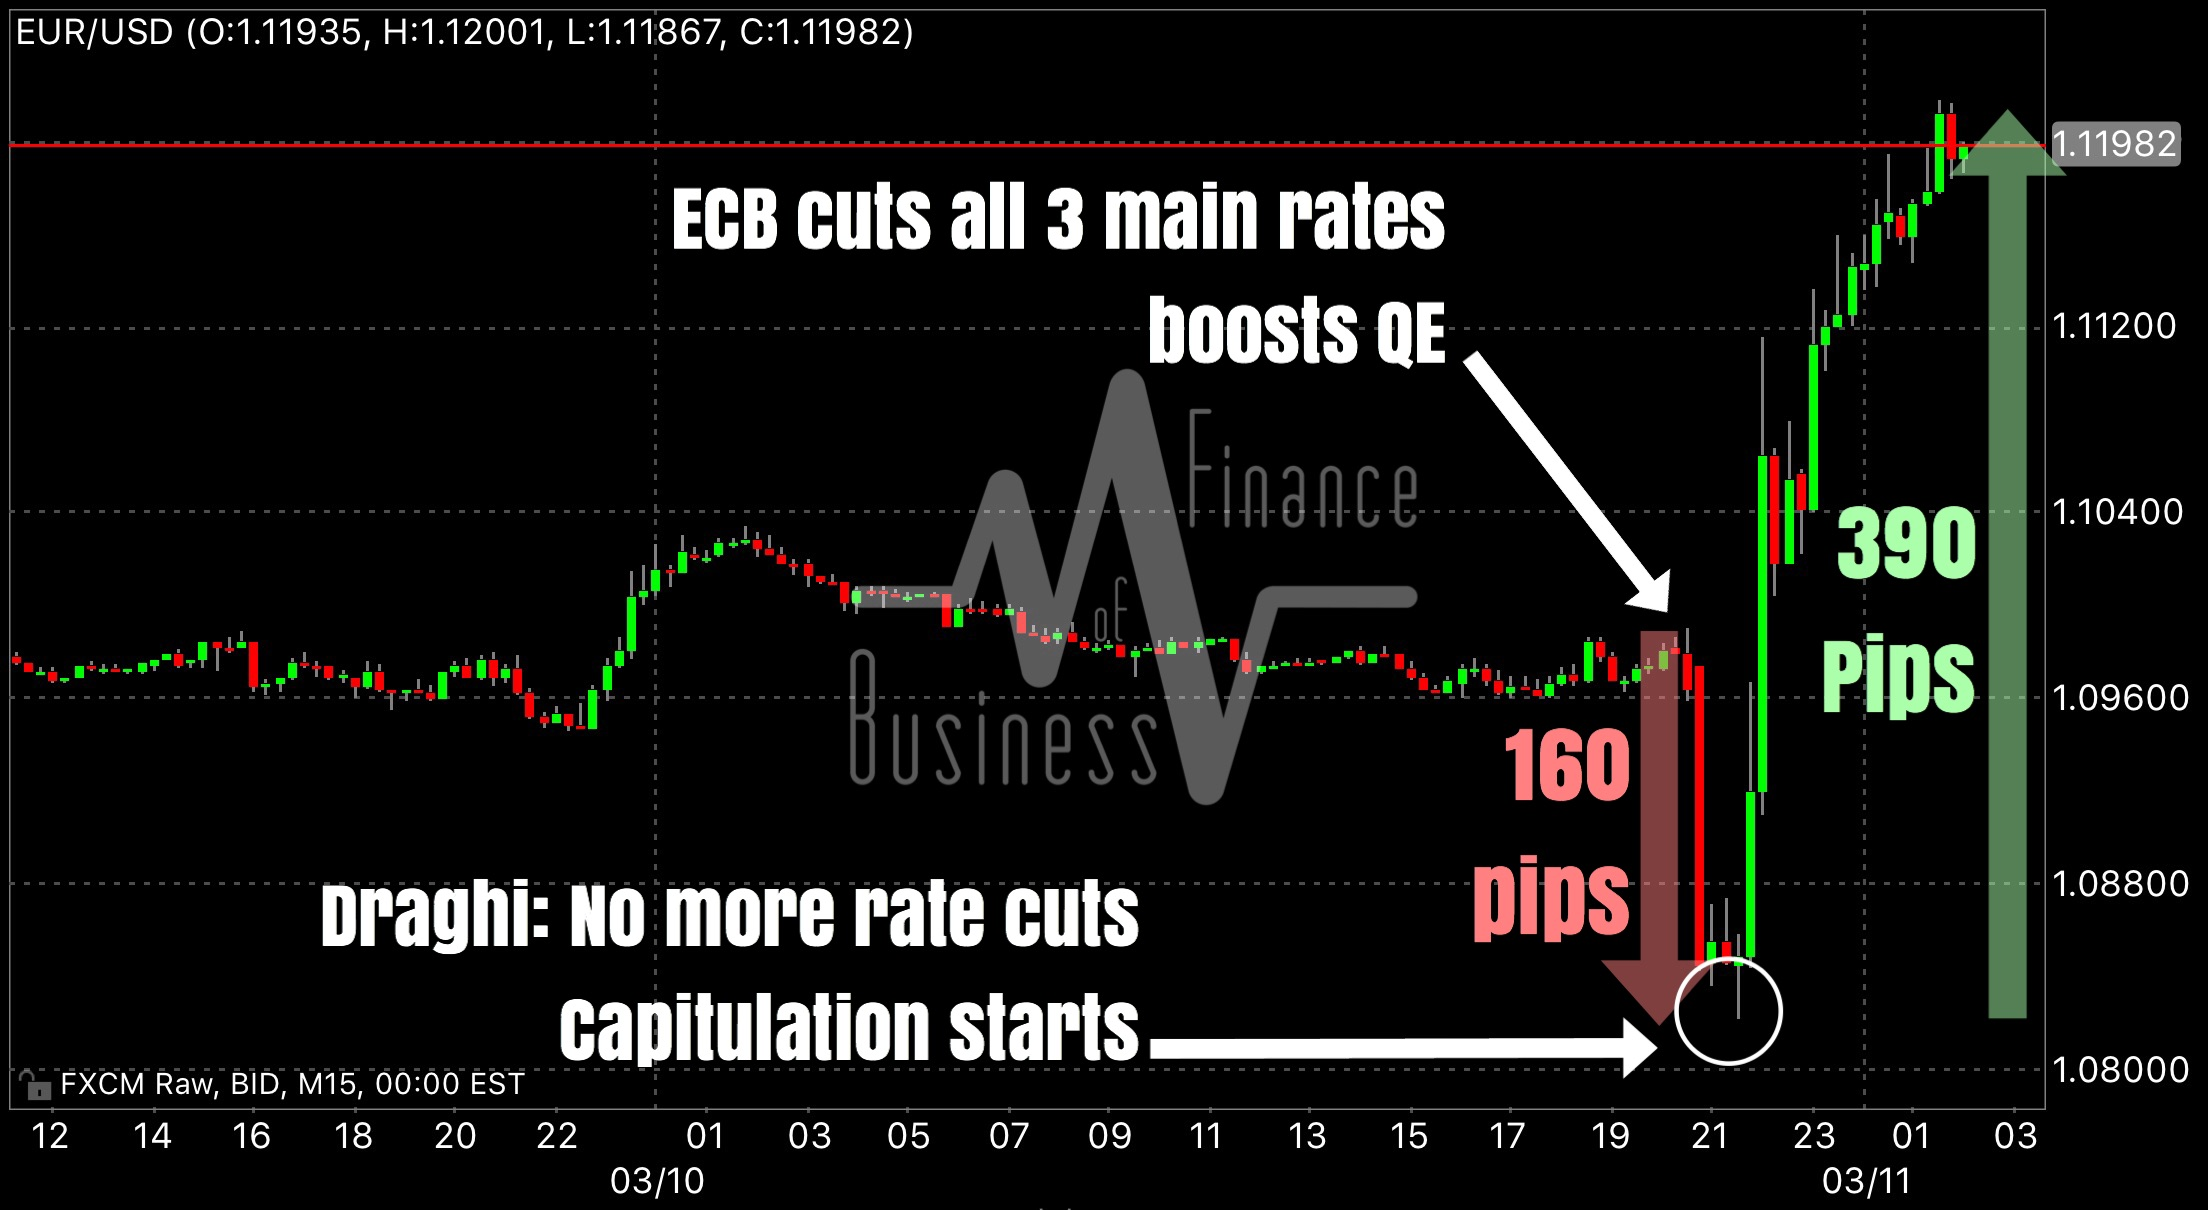 """""""A very wild and extremely volatile (painful) day for traders across most asset classes. After dropping just over 160 pips from pre-ECB highs, the euro (EURUSD) rebounded almost immediately after Draghi toned down his rhetoric on further interest rate cuts (which was exactly what markets have been discounting since January's meeting). The euro is now up a staggering 390 pips from its intraday lows! Global equities are all trading significantly weaker, while gold has resumed rallying on the heels of a weaker dollar (massive euro liquidations).    Lesson of the day? Know what you wish for!""""   Business Of Finance on Facebook, 11 March 2016"""